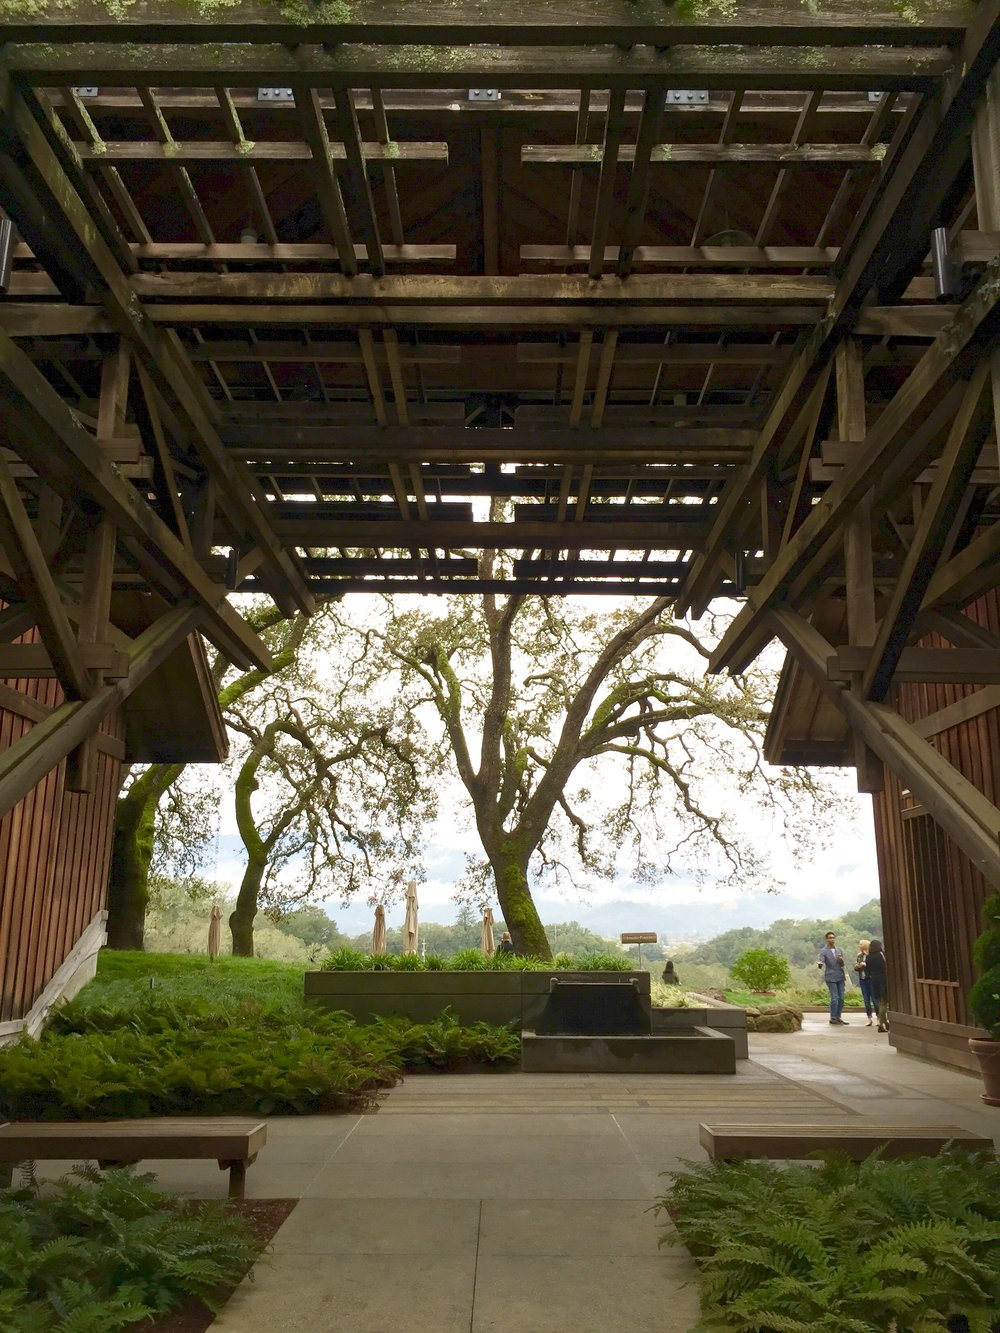 The grand entrance at Joseph Phelps Vineyards - a winery to see for the interiors, views, architecture, and the wine